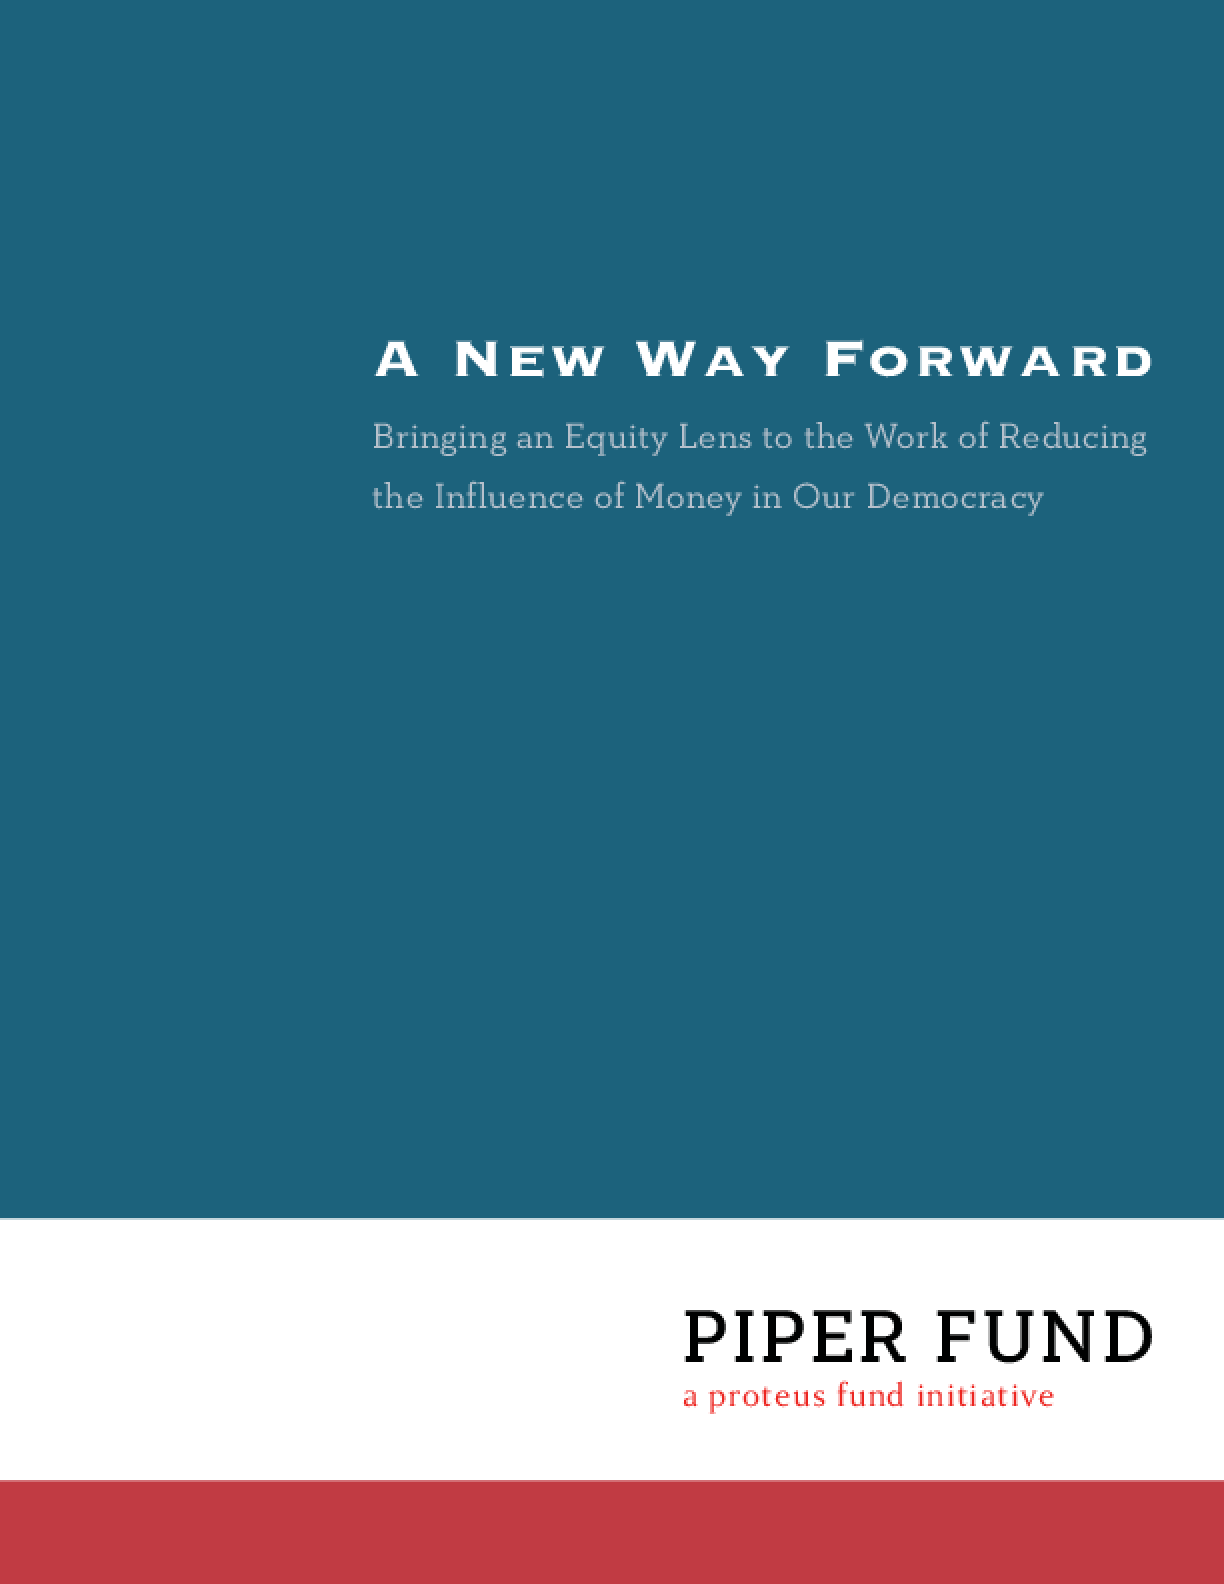 A New Way Forward: Bringing an Equity Lens to the Work of Reducing the Influence of Money in Our Democracy